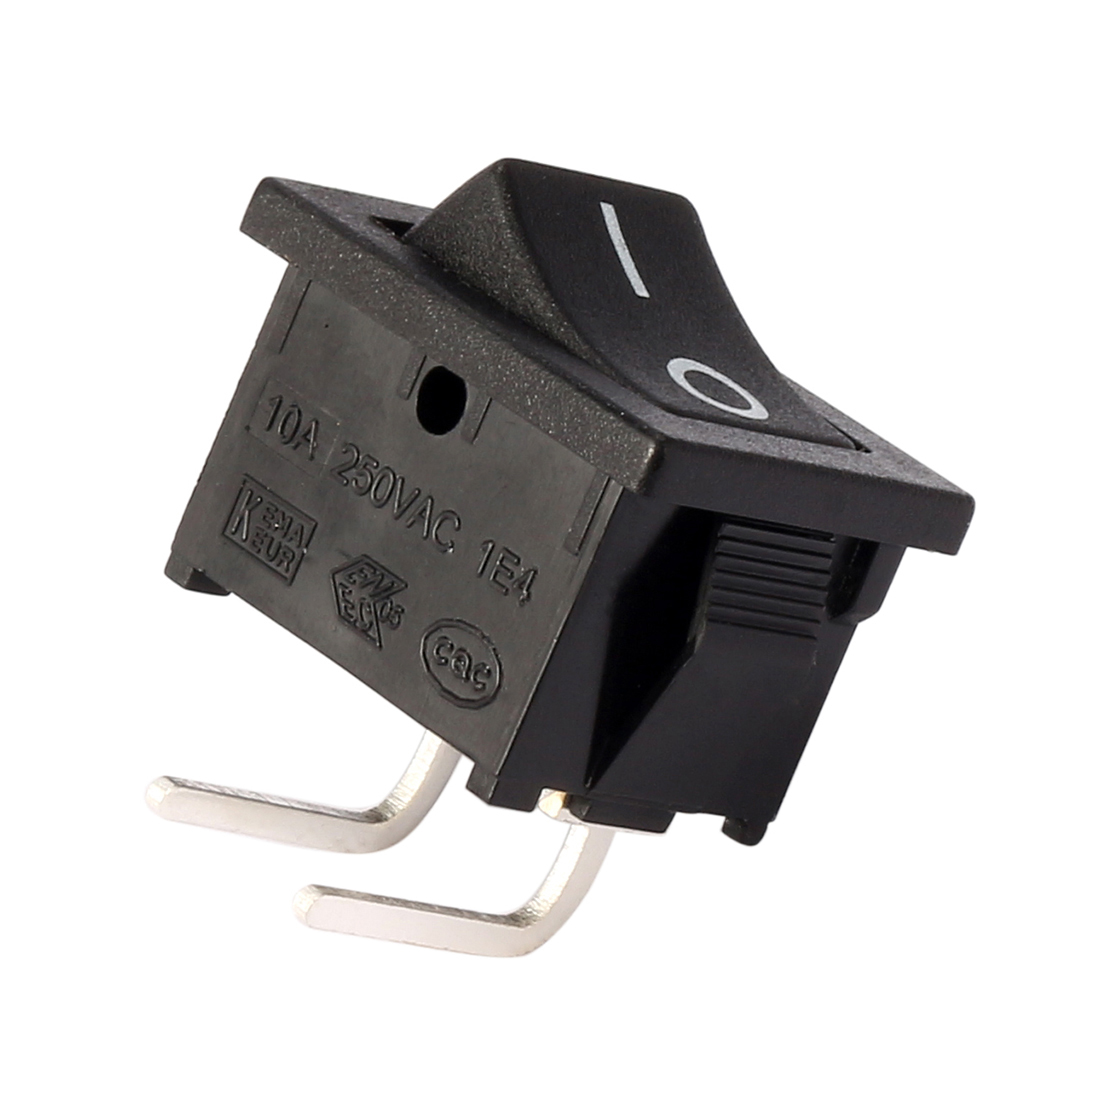 AC 125V/12A 250V/10A SPST 2P 2 Position I/O Right Angle Rocker Switch